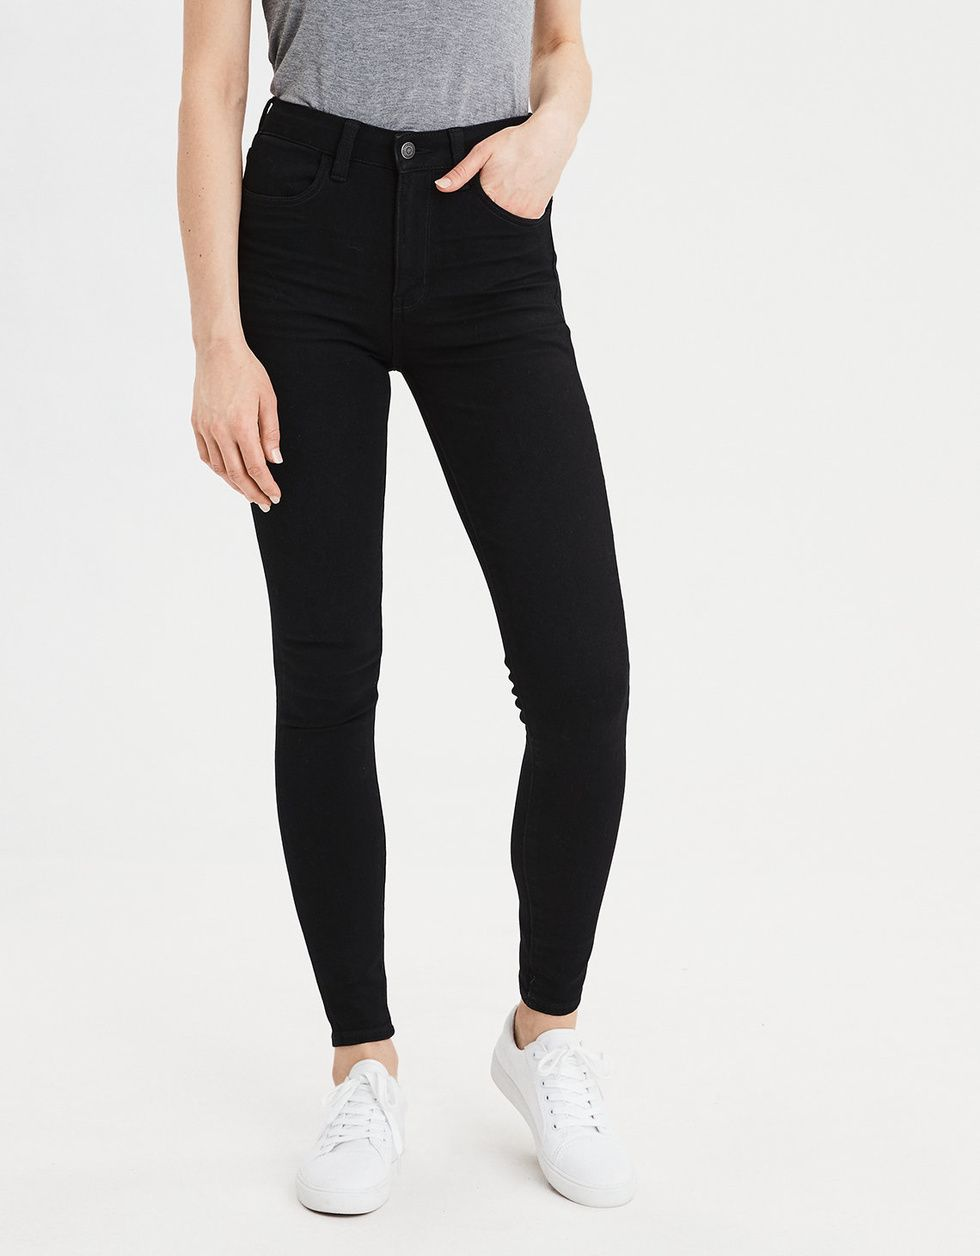 5a009f1dcc0bd The only pair of postpartum jeans you need 🙌 - Motherly